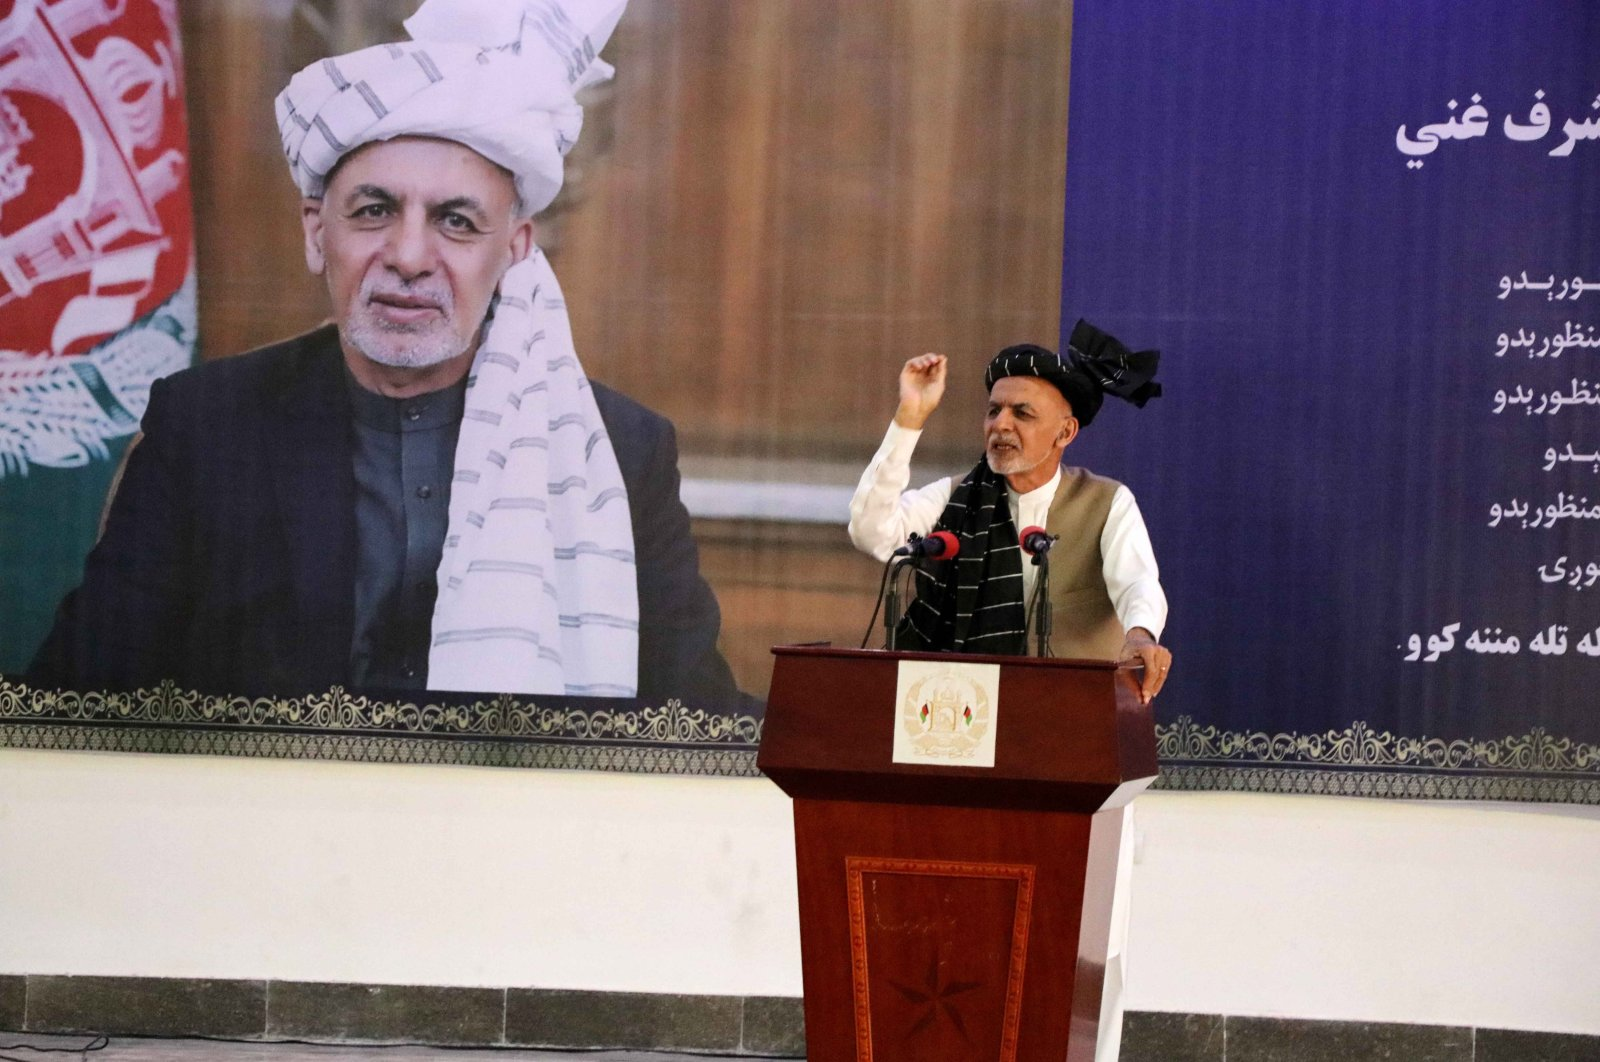 Afghan President Ashraf Ghani (C) talks with supporters during his visit to Kandahar, Afghanistan, April 22, 2021. (EPA Photo)